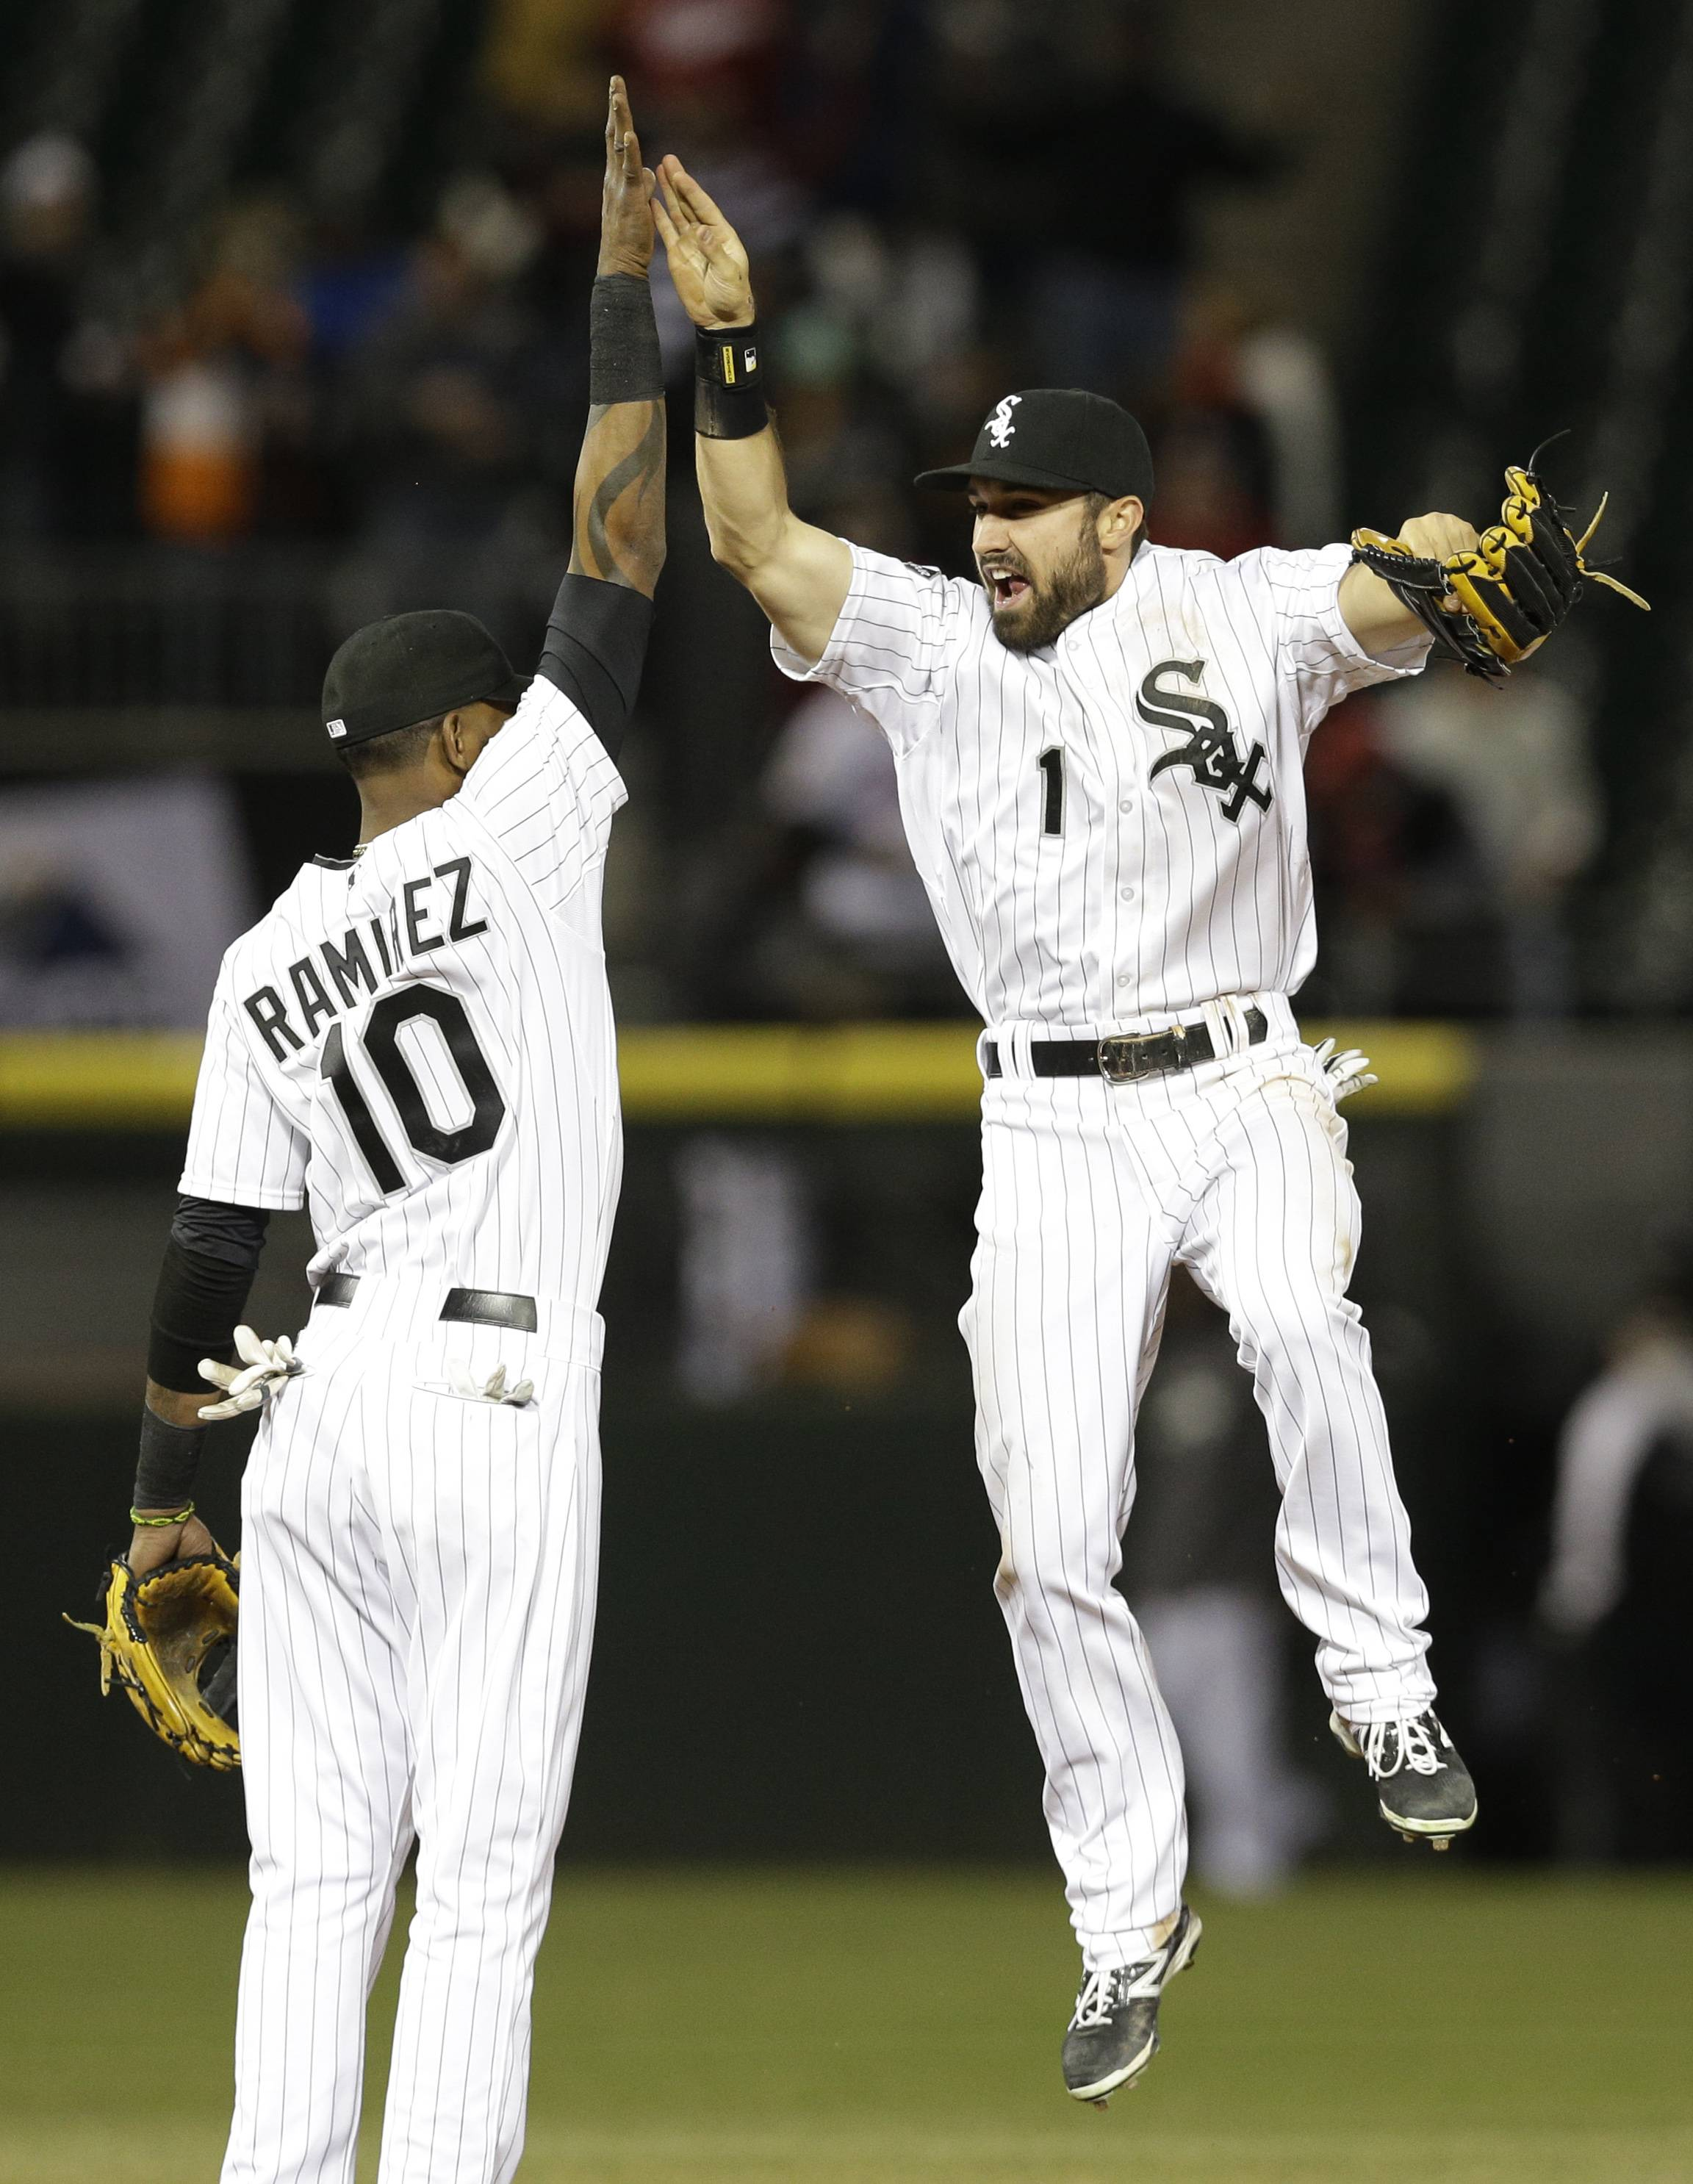 White Sox' Adam Eaton, right, celebrates with Alexei Ramirez after they defeated the Cleveland Indians 7-3 in a baseball game in Chicago Thursday.